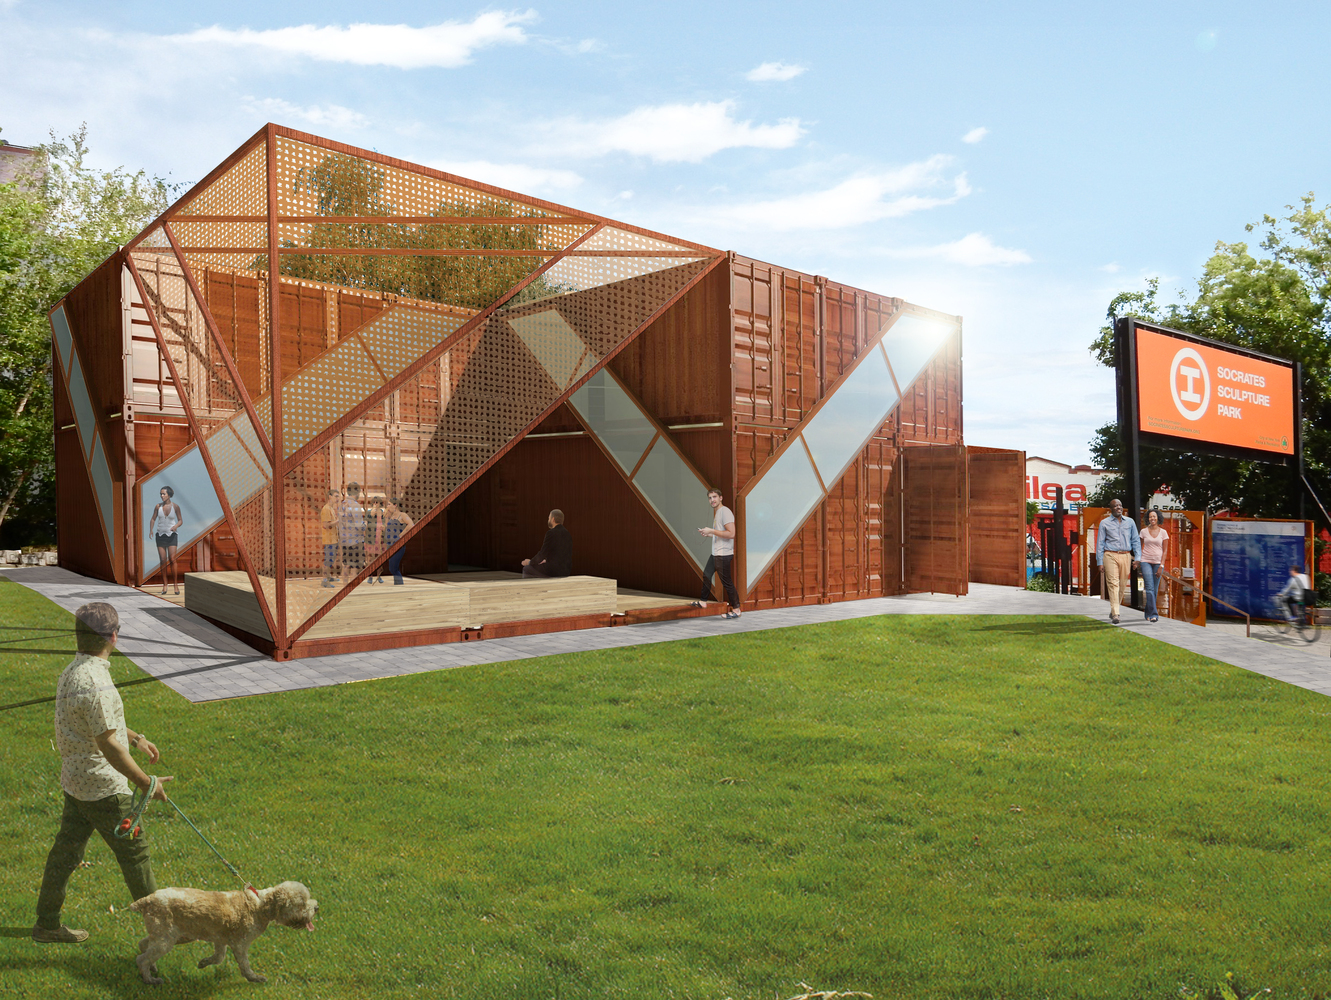 rendering of shipping container building built using prefabrication from steel in a city park